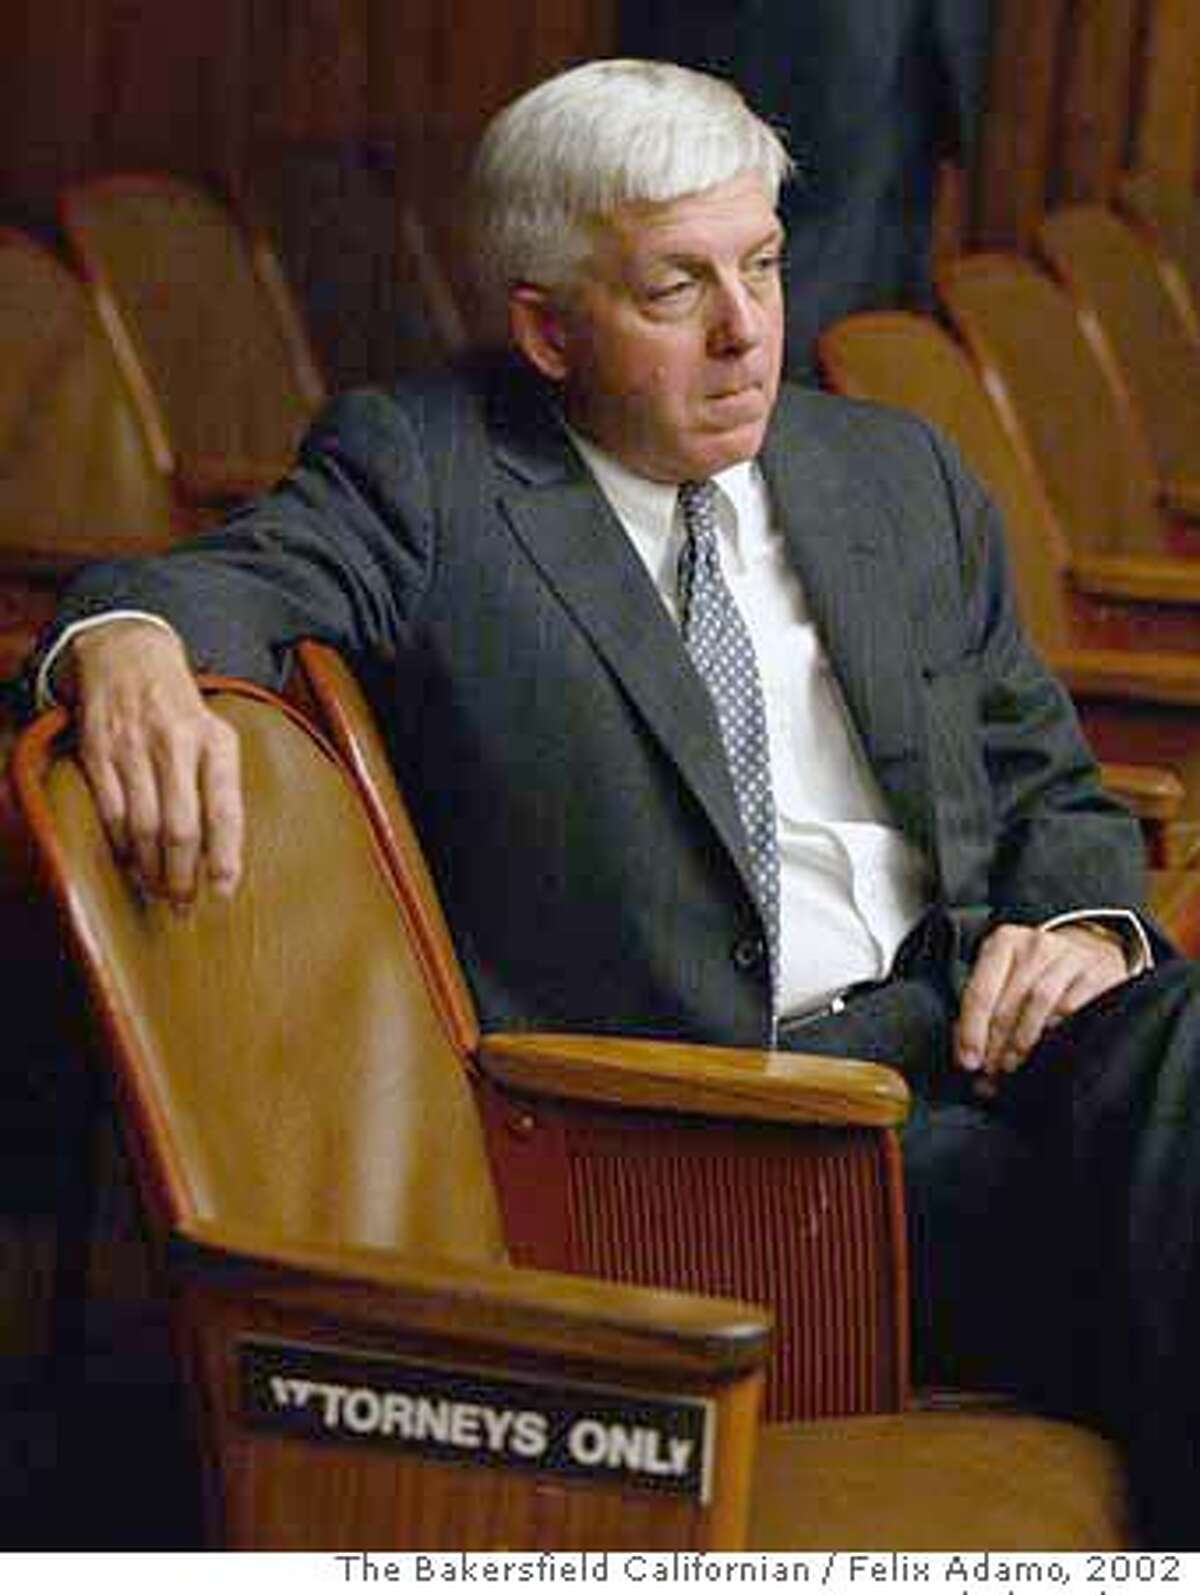 Kern County district attorney Ed Jagels sits in the front row of Superior court for the arraignment of Chris Hillis in the murder of Assistant District Attorney Stephen Tauzer. October, 2002. Photo by Felix Adamo / The Bakersfield Californian Pub date: 10/23/2002 News A2 pub date: 05/10/06 new a1